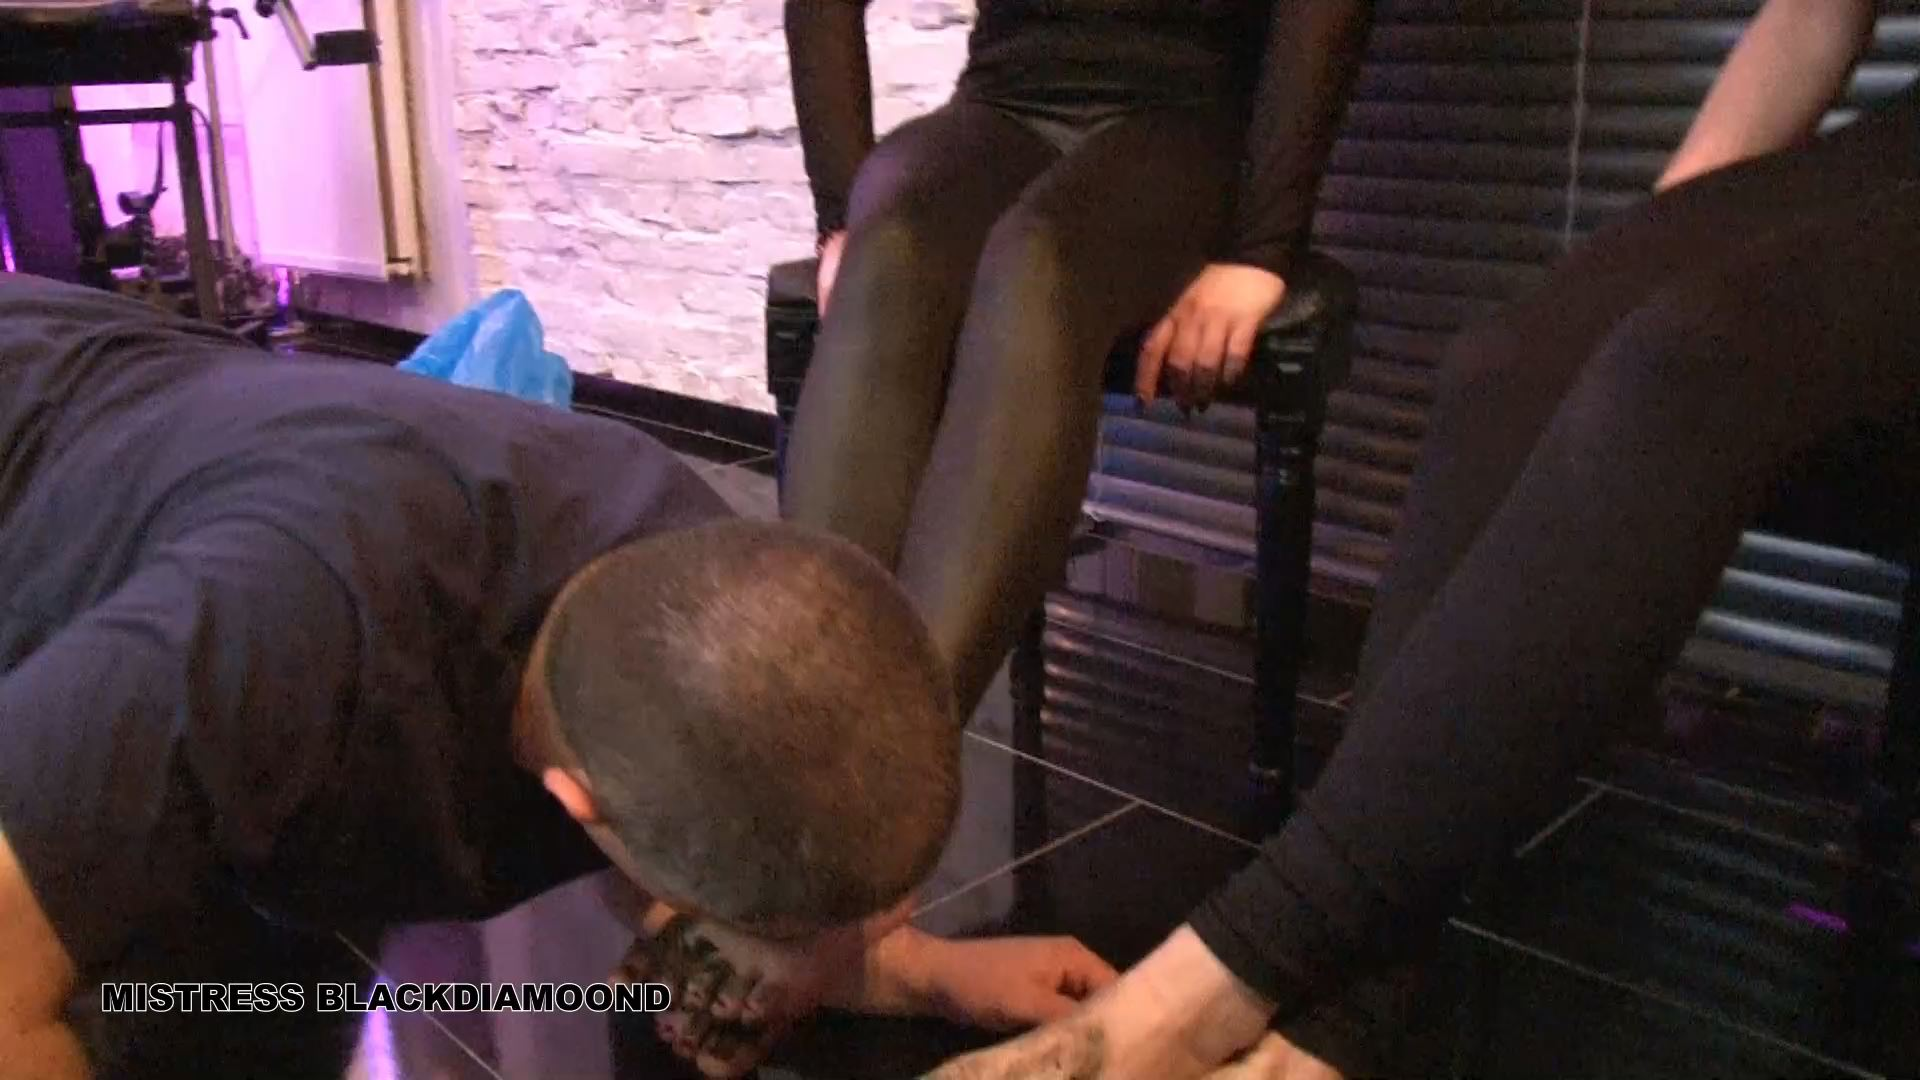 Mistress Blackdiamoond In Scene: Dirty feet - CLIPS4SALE / MISTRESS BLACKDIAMOOND - FULL HD/1080p/MP4